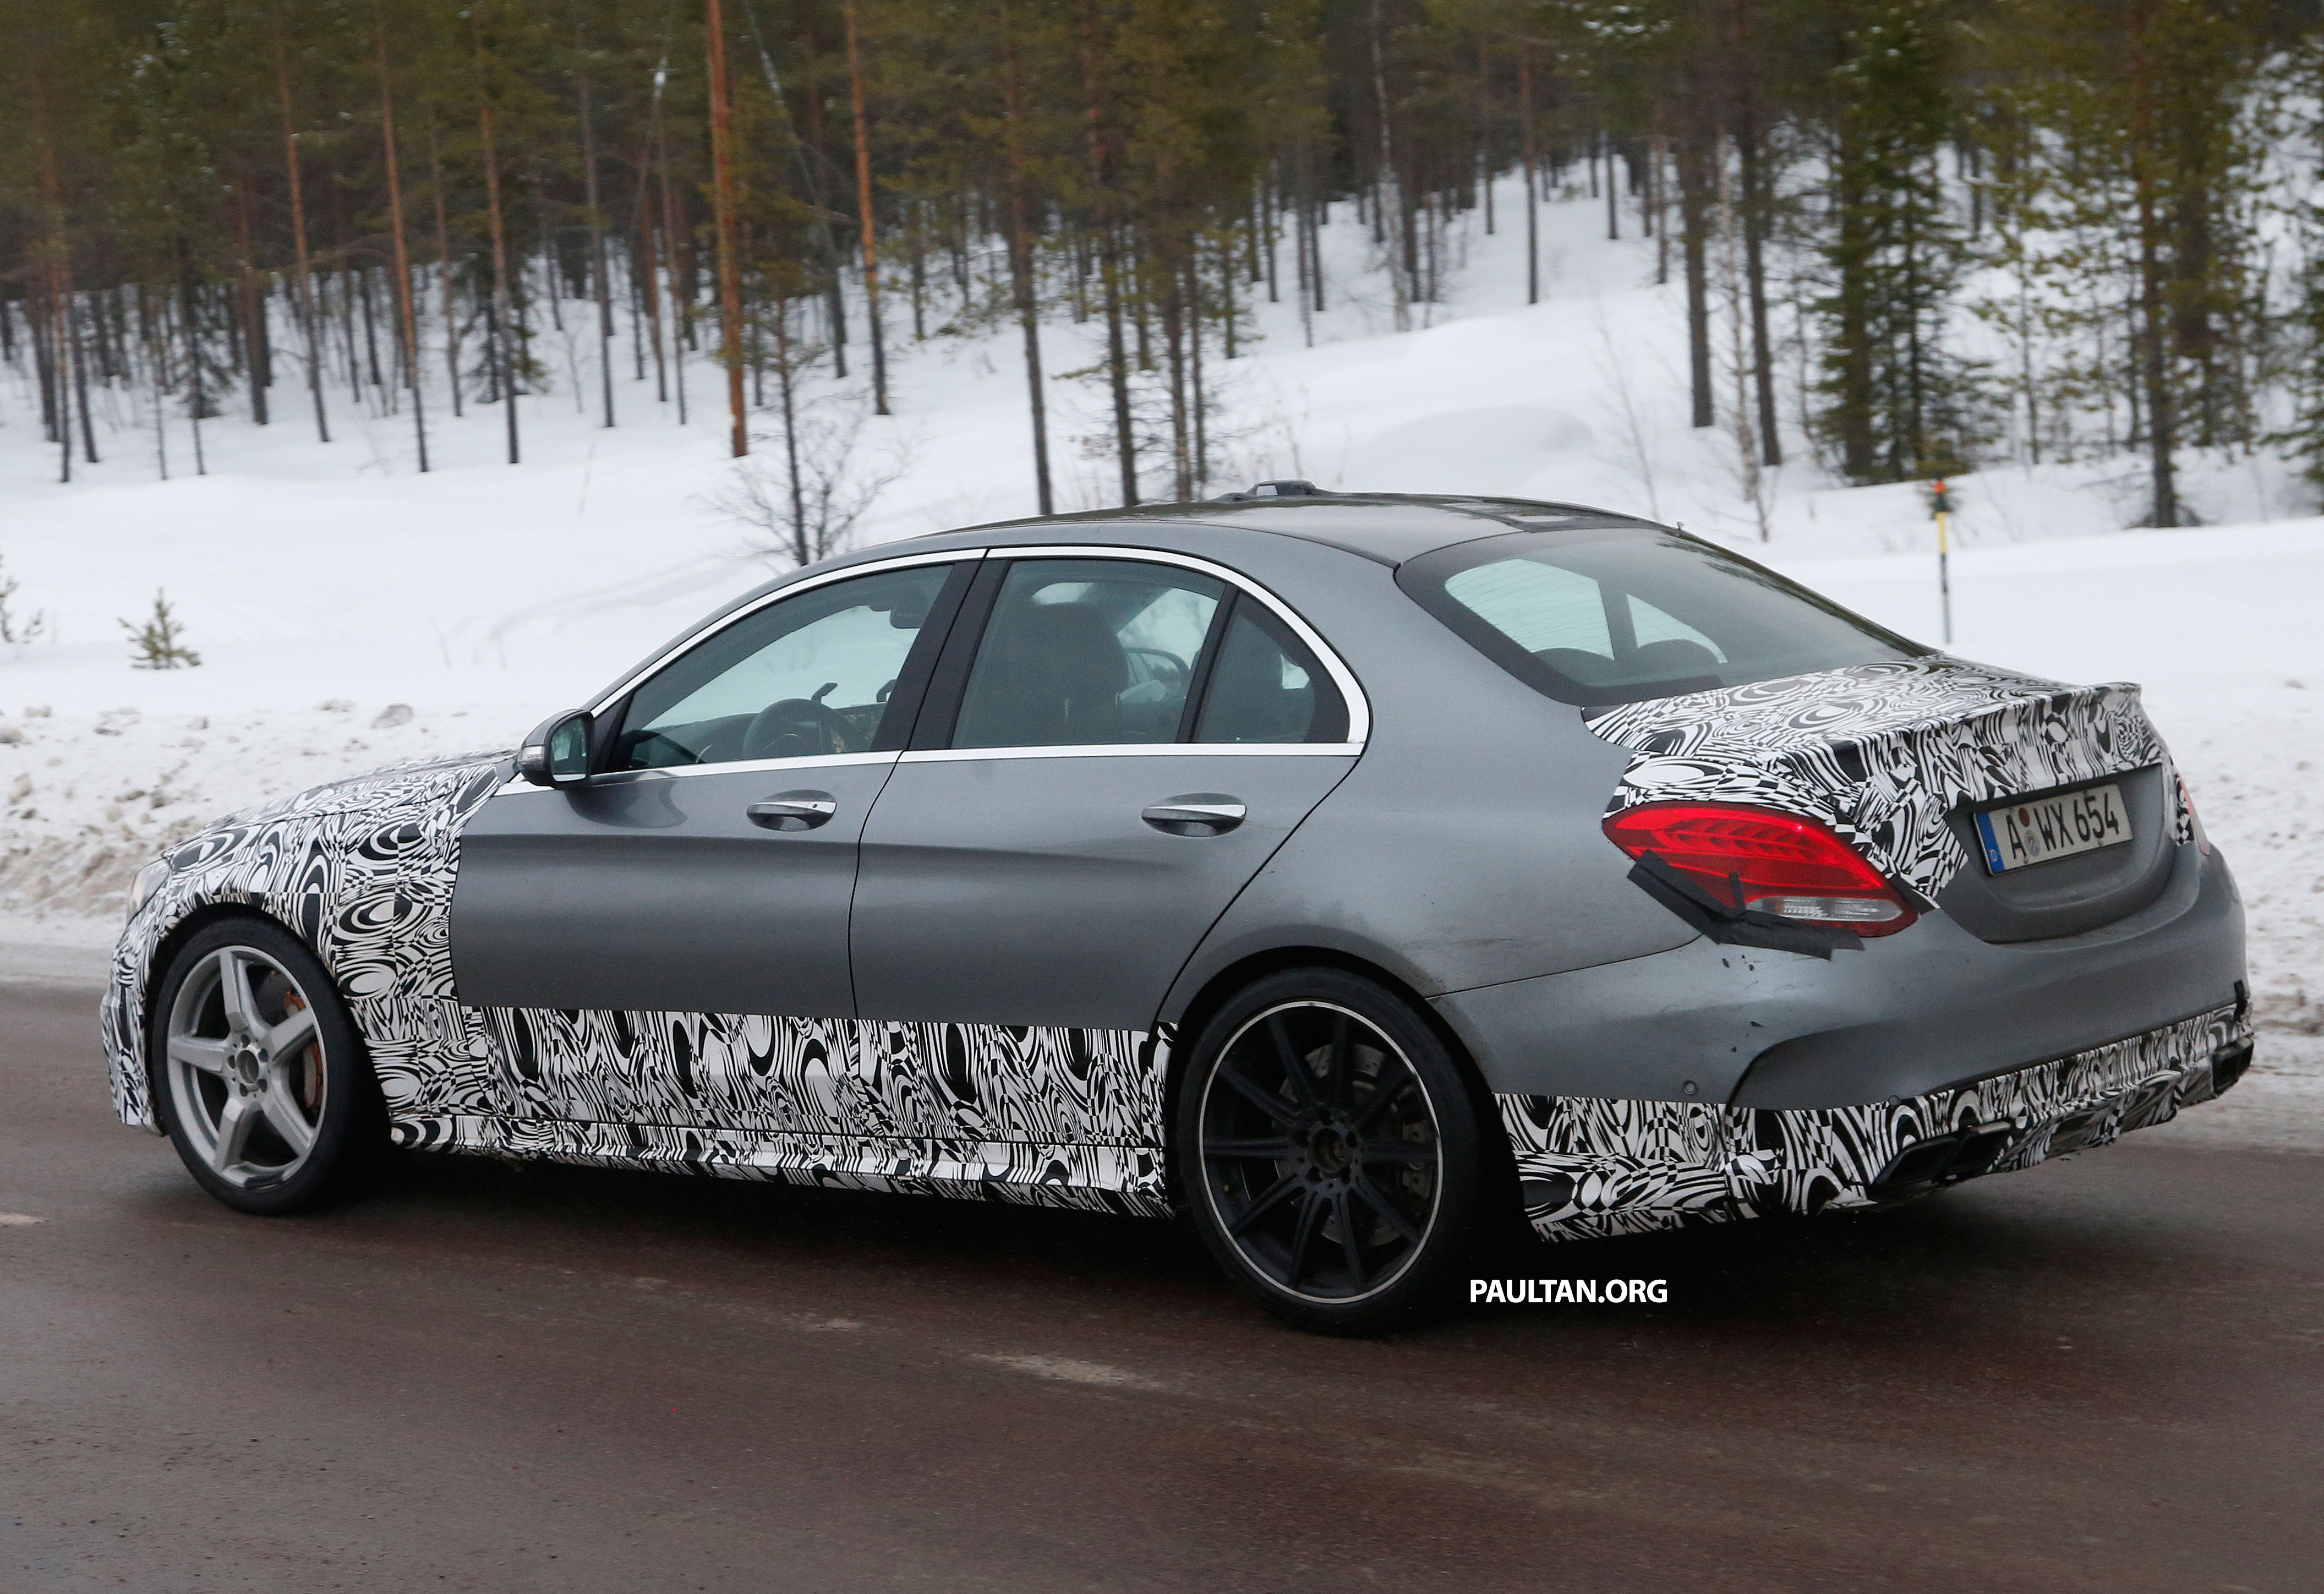 Mercedes-Benz readying next generation C63 AMG Paul Tan ...